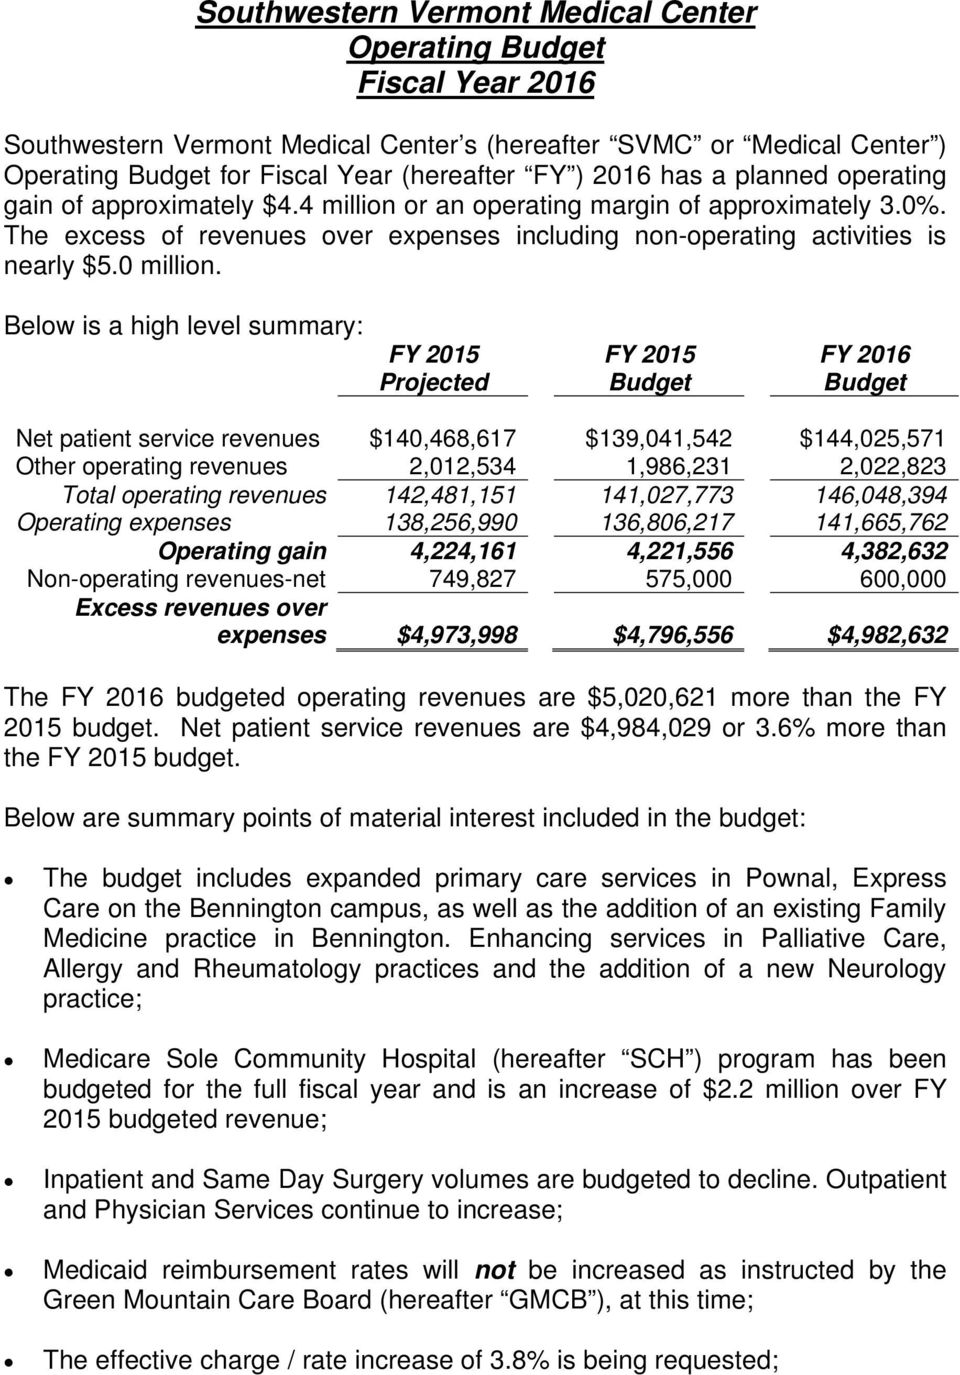 Below is a high level summary: FY 2015 Projected FY 2015 Budget FY 2016 Budget Net patient service revenues $140,468,617 $139,041,542 $144,025,571 Other operating revenues 2,012,534 1,986,231